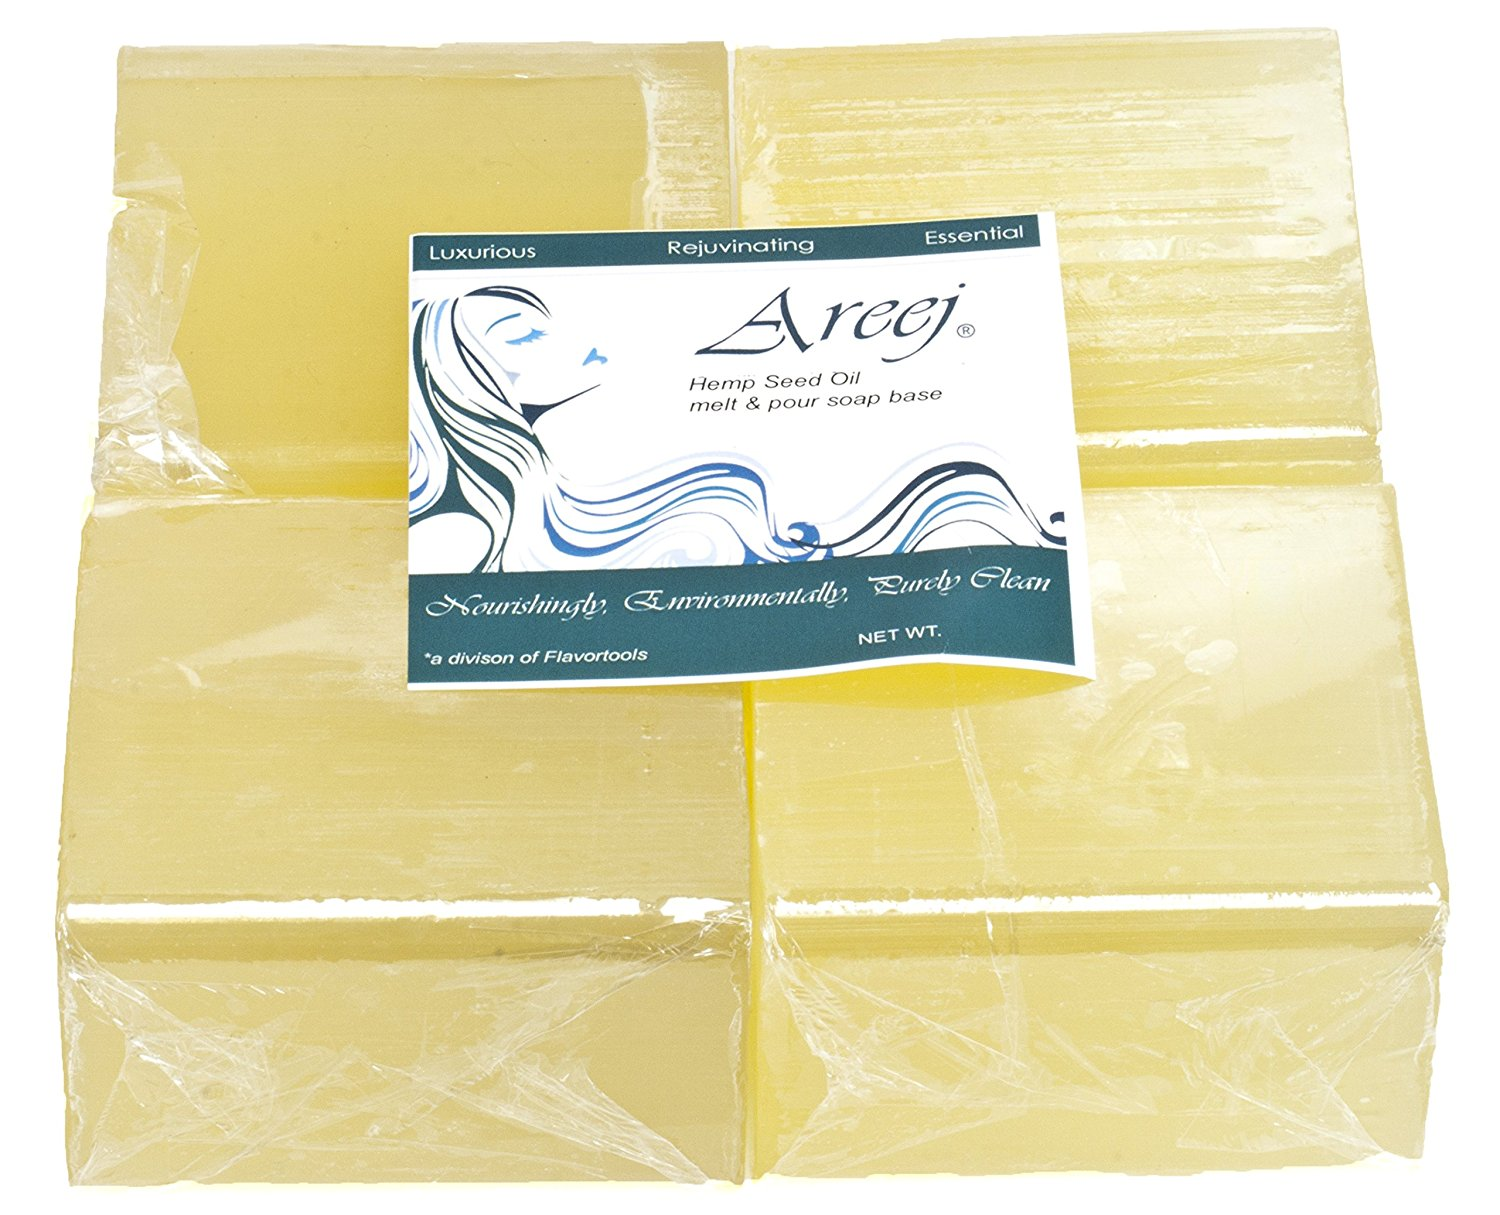 Areej Hypo-Allergenic Biodegradable Hemp Seed Oil Soap Base made with 100% Pure Natural Glycerin - 5 Pounds